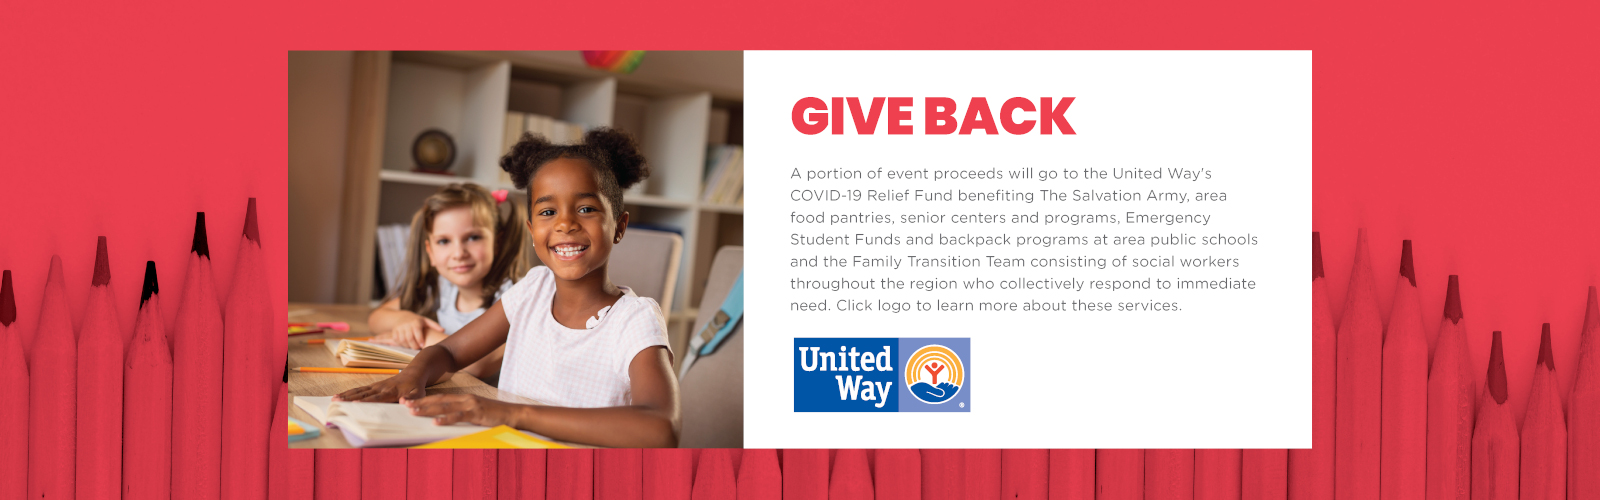 A portion of event proceeds will go to the United Way's COVID-19 Relief Fund